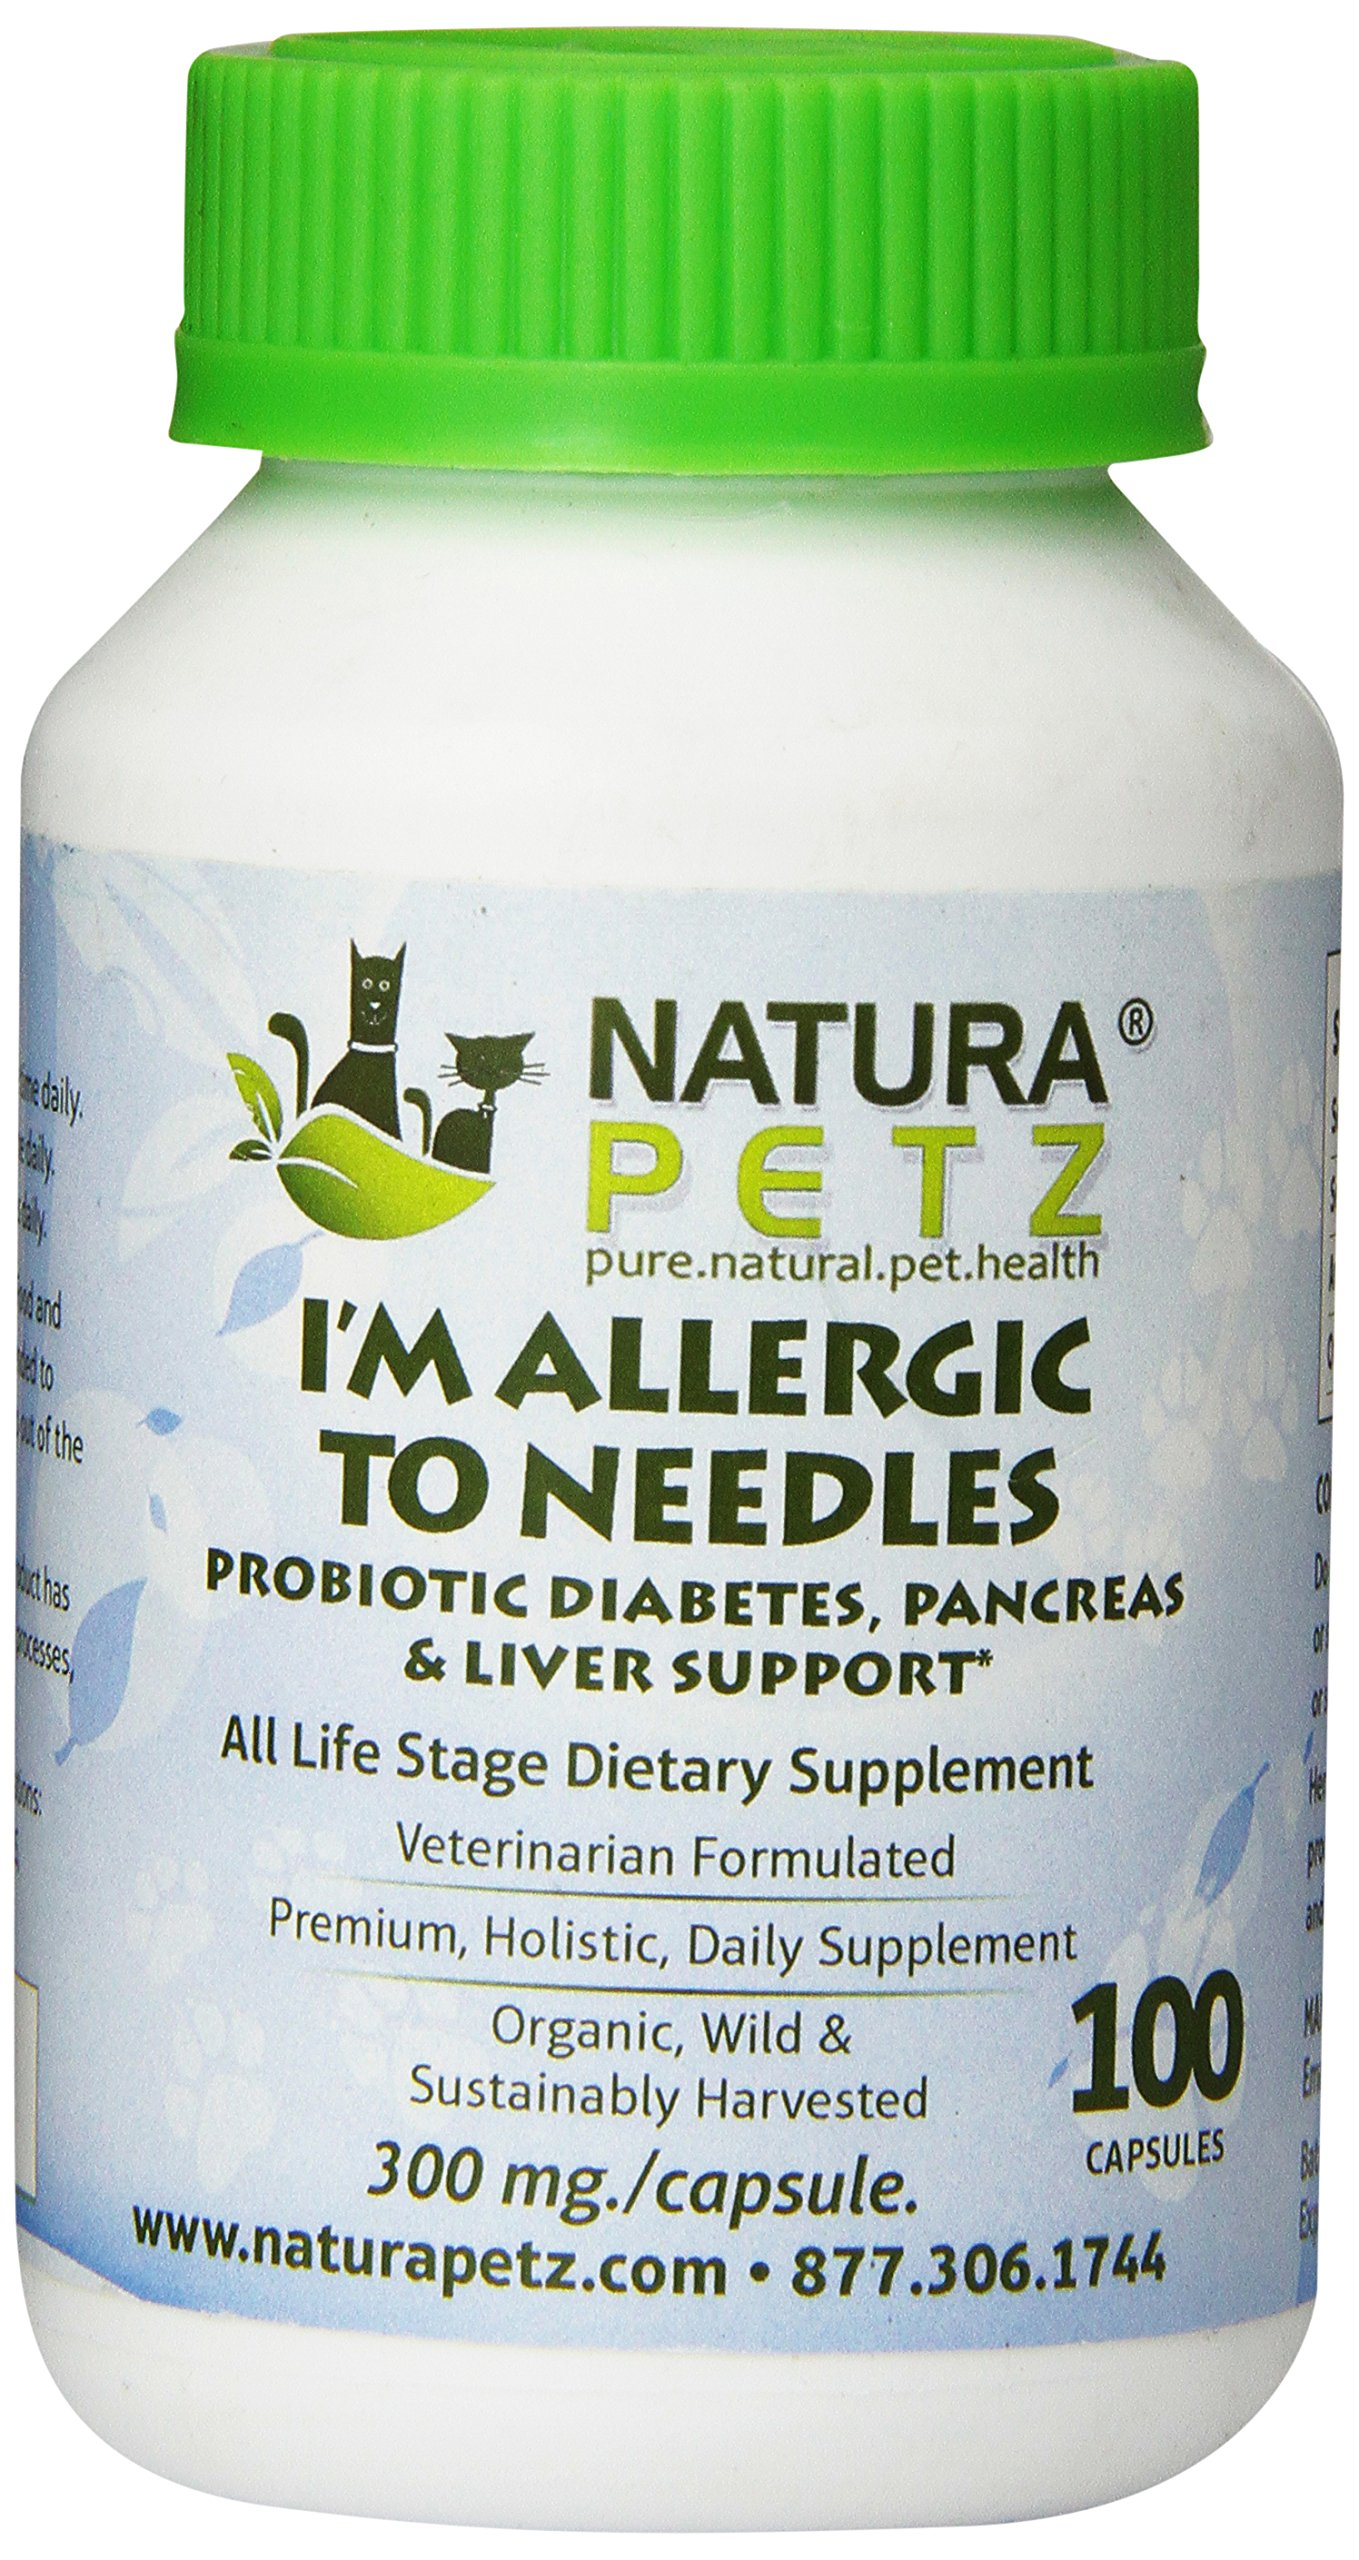 Natura Petz I'm Allergic to Needles Probiotic Diabetes, Pancreas, Liver and Insulin Resistance Support for Pets, 100 Capsules, 300mg Per Capsule by Natura Petz